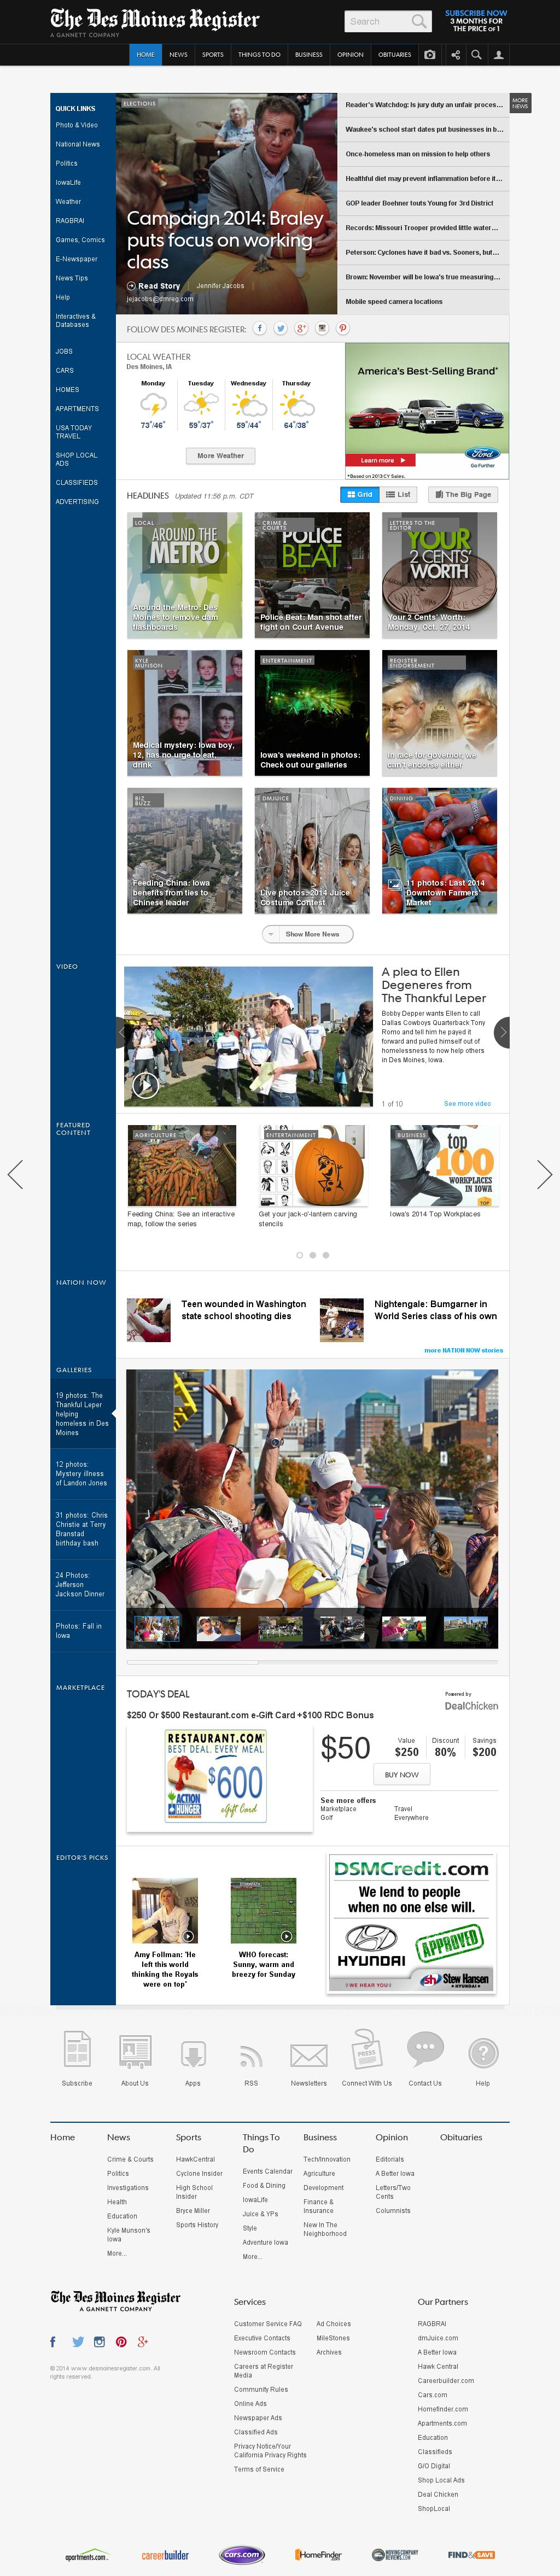 DesMoinesRegister.com at Monday Oct. 27, 2014, 9:03 a.m. UTC